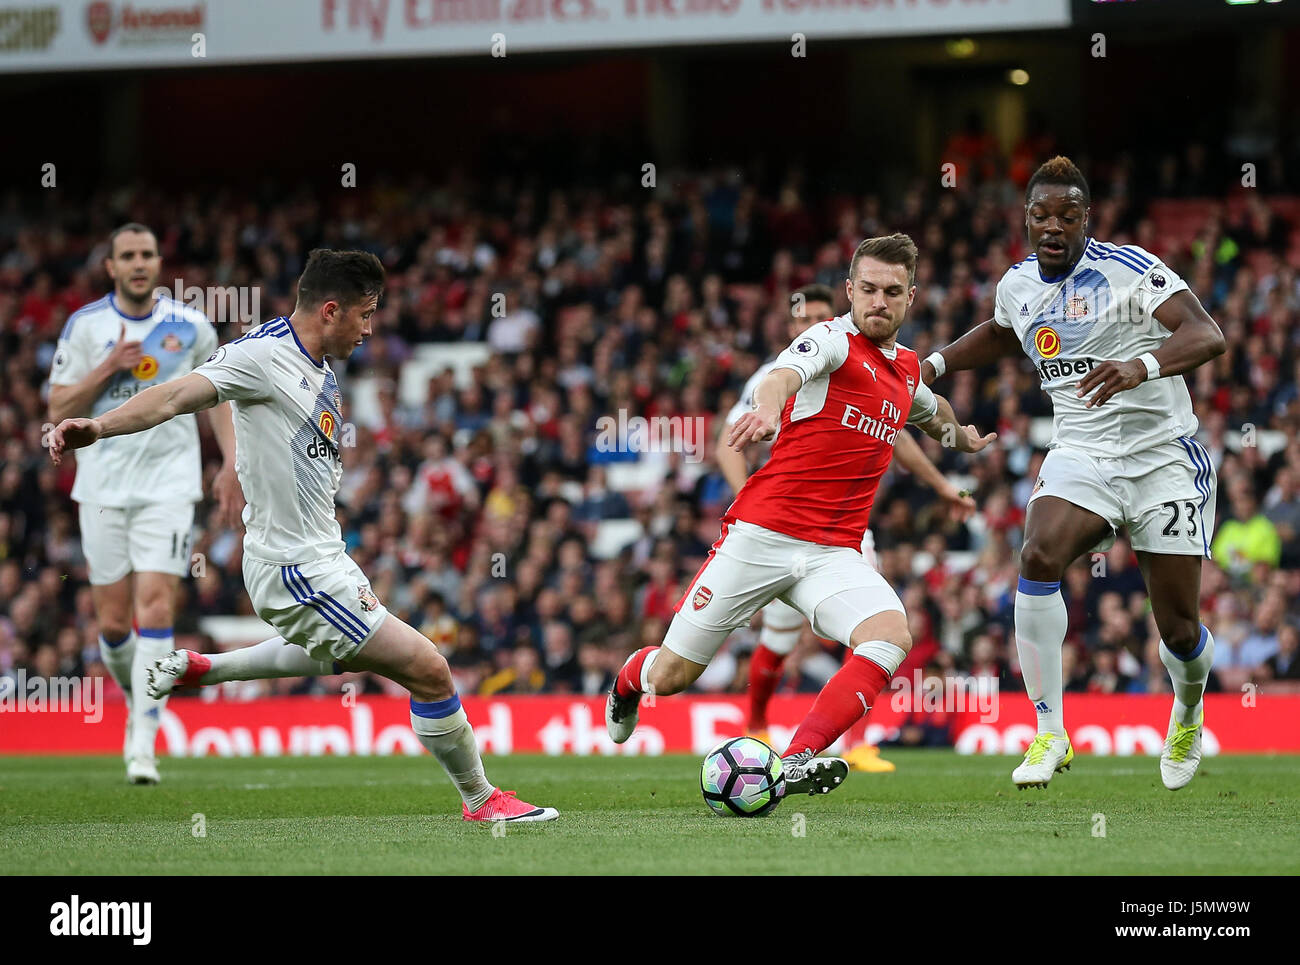 Aaron Ramsey of Arsenal shapes to shoot during the Premier League match between Arsenal and Sunderland AFC at the - Stock Image